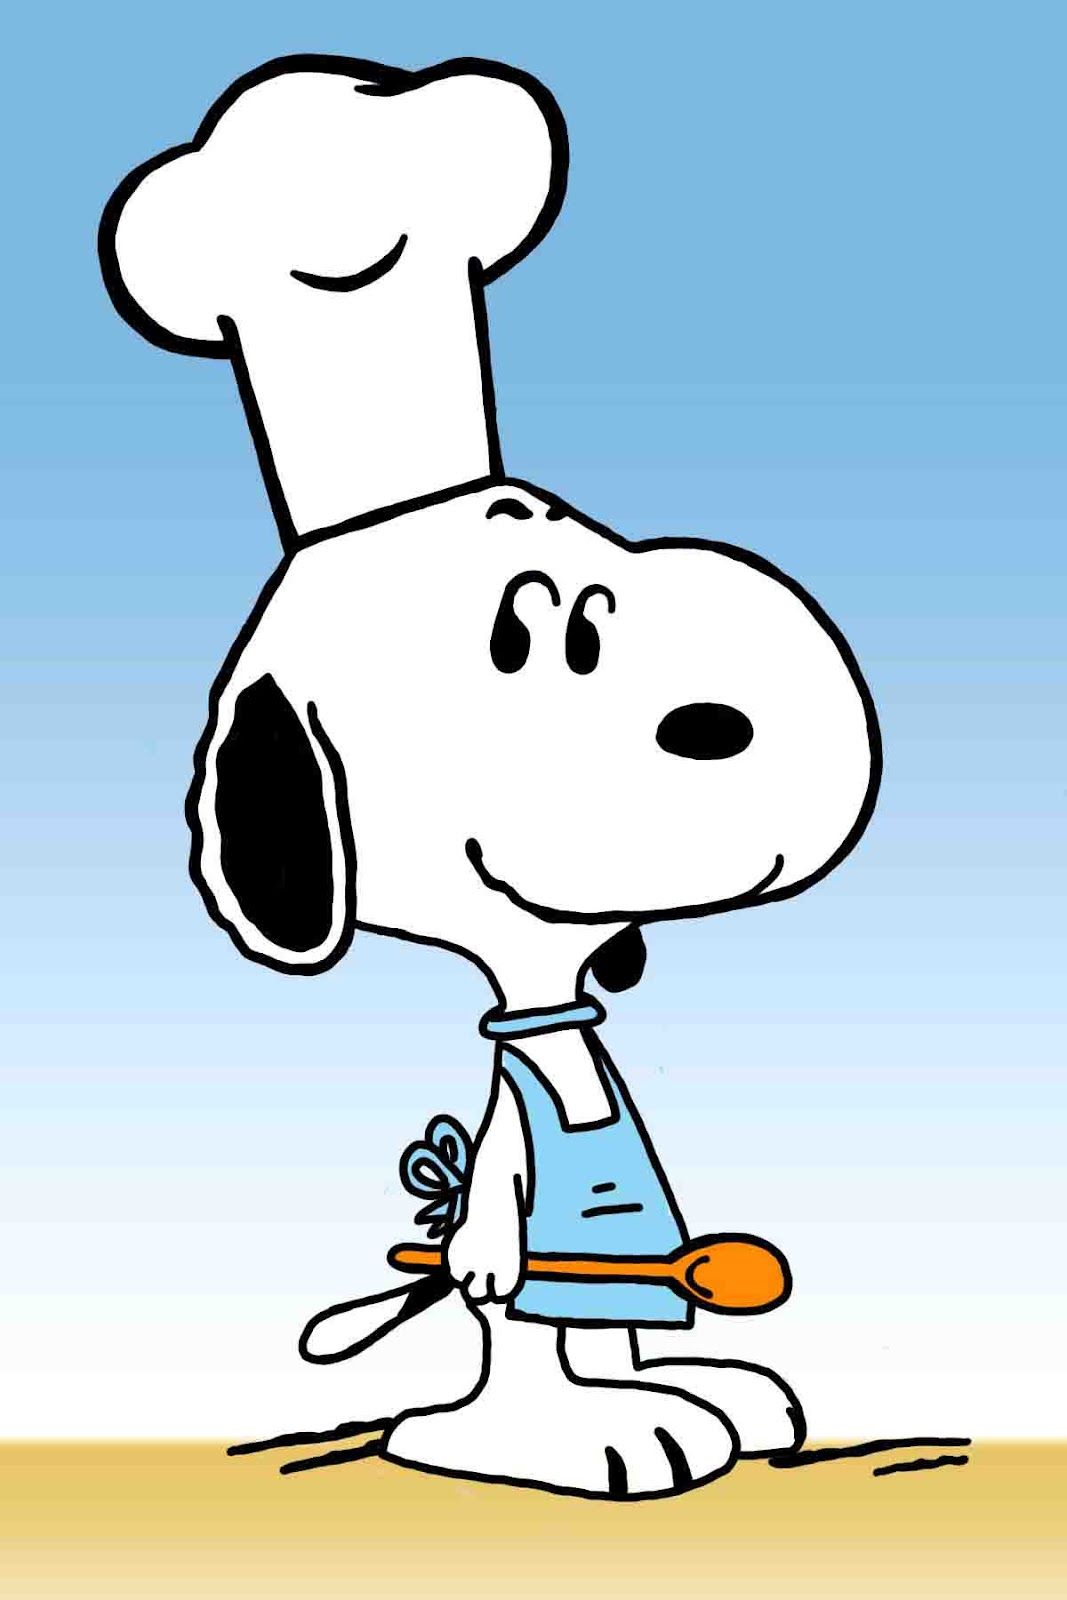 Snoopy The Chef Hd Background Image For Iphone Cartoons Backgrounds